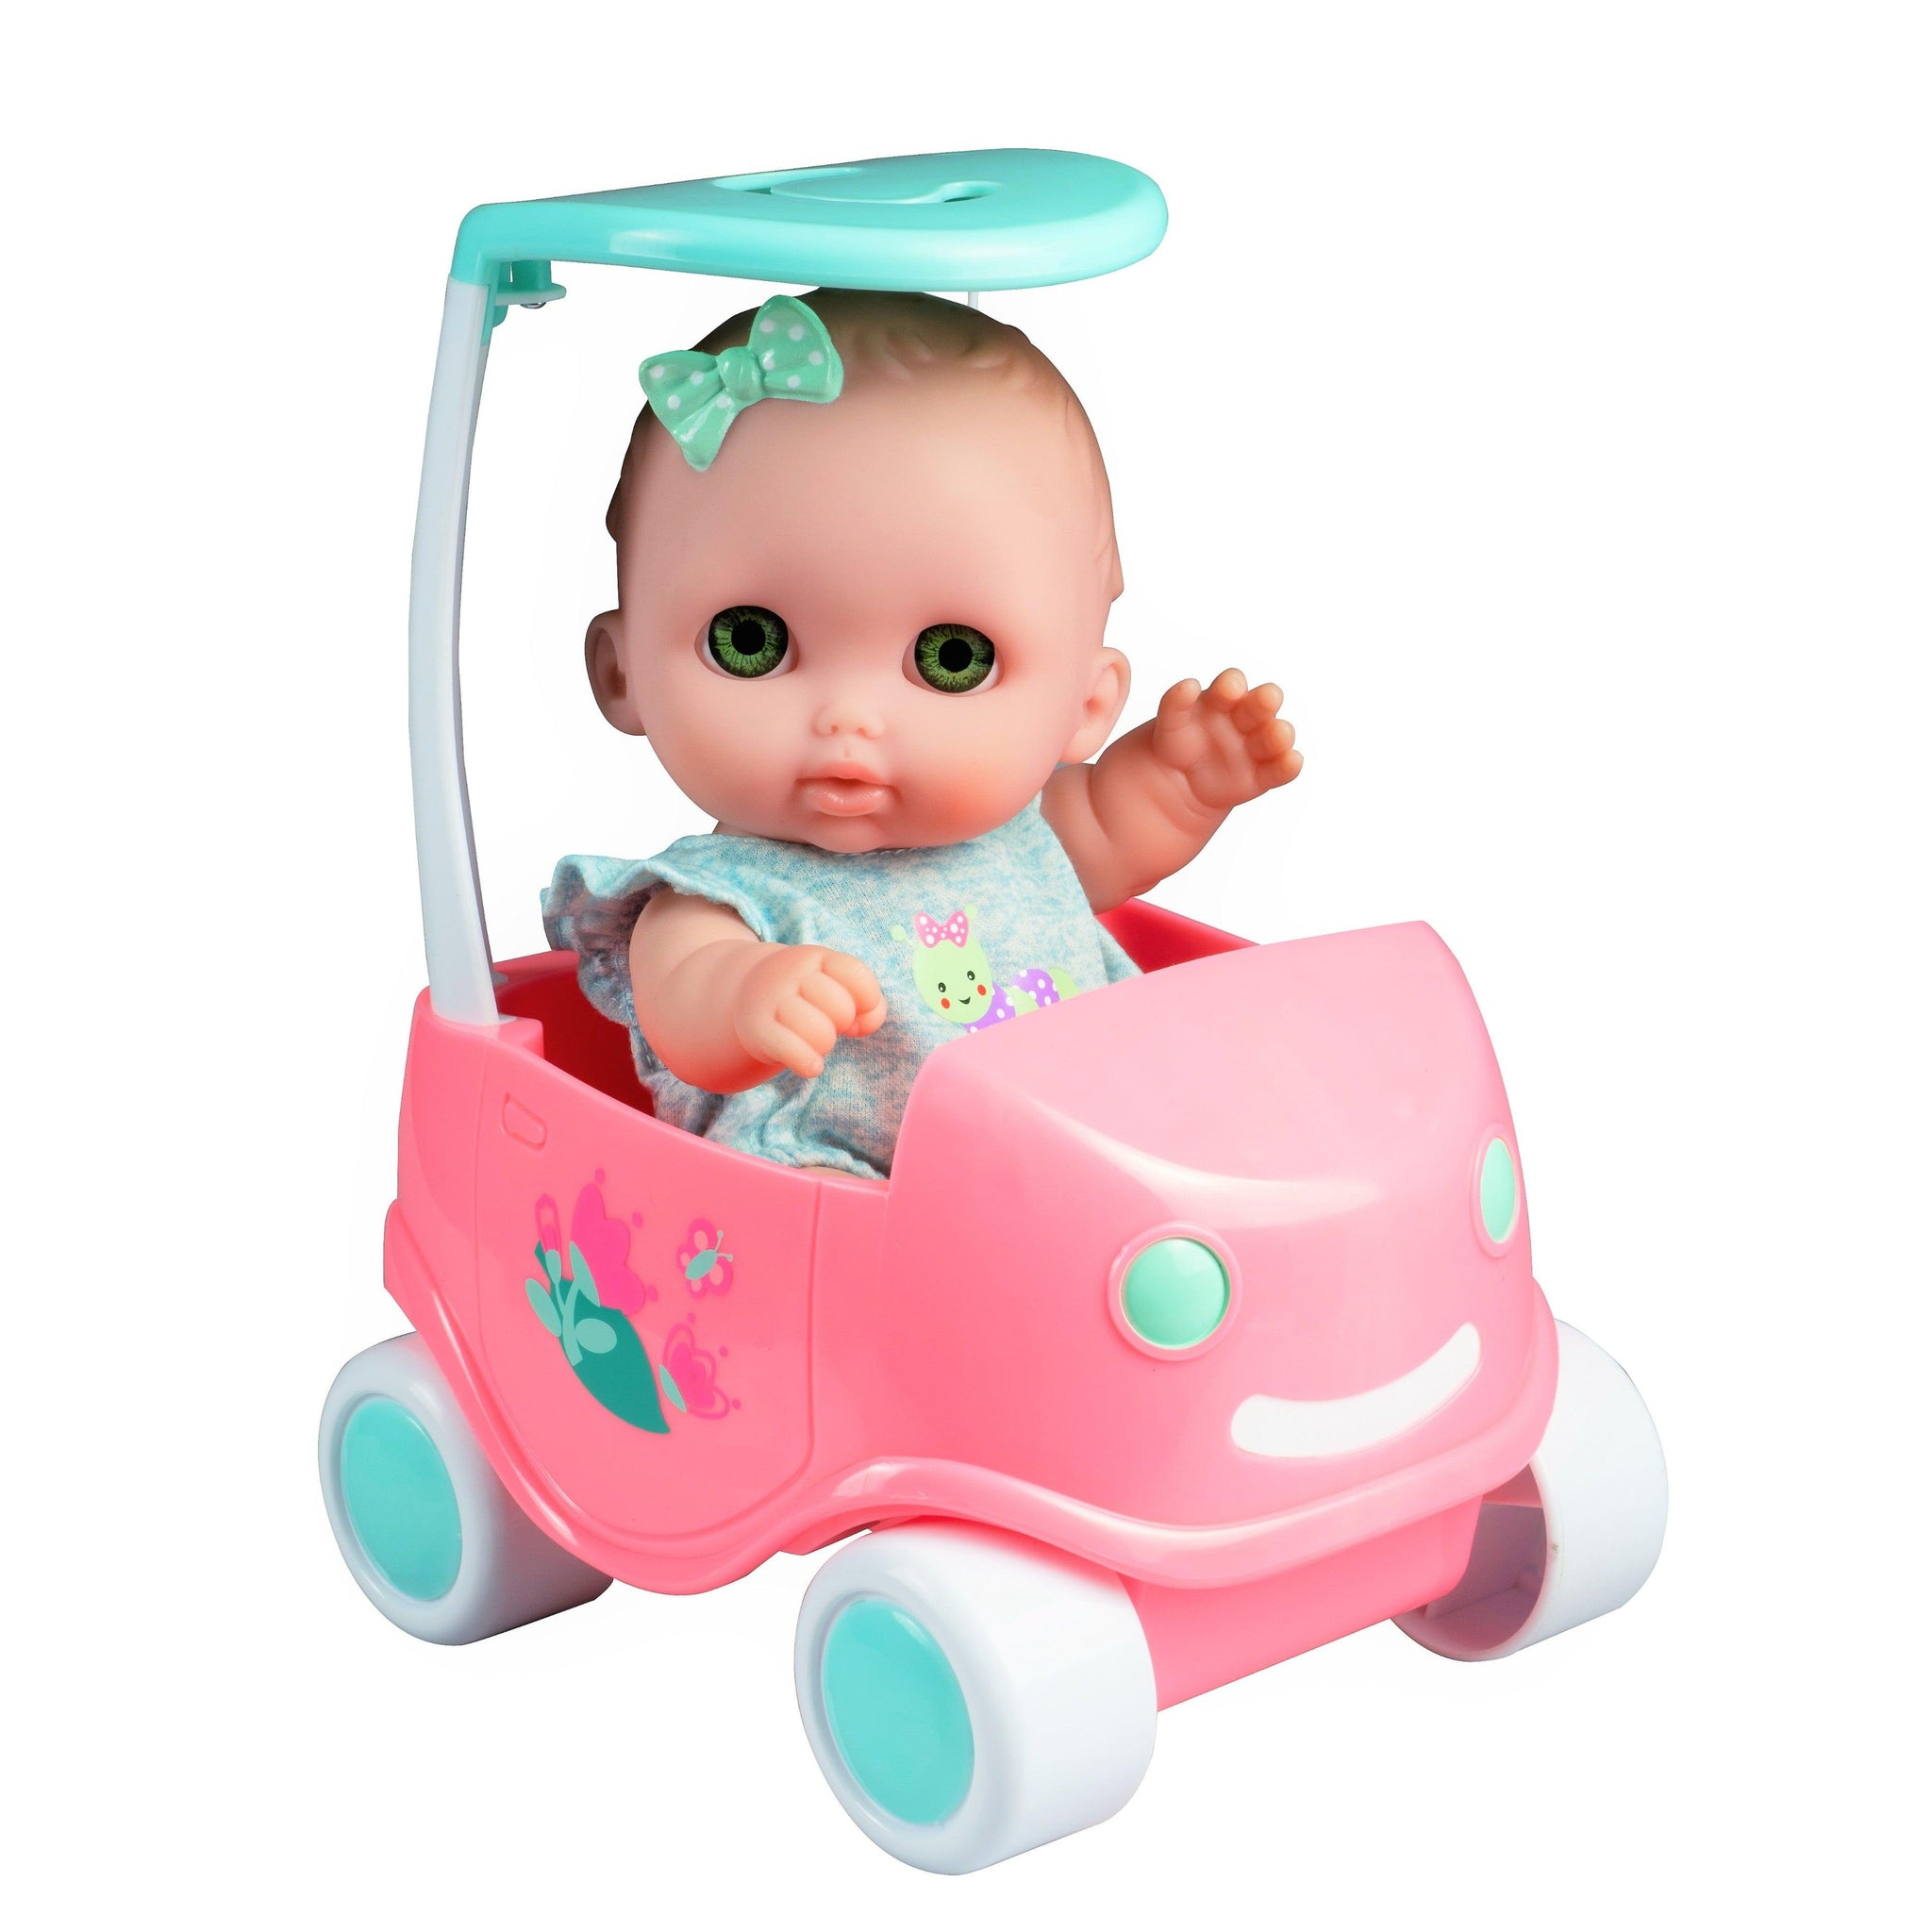 "Lil' Cutesies with Cute Buggy Set - 8.5"" All vinyl Washable Baby Doll for children 2+"